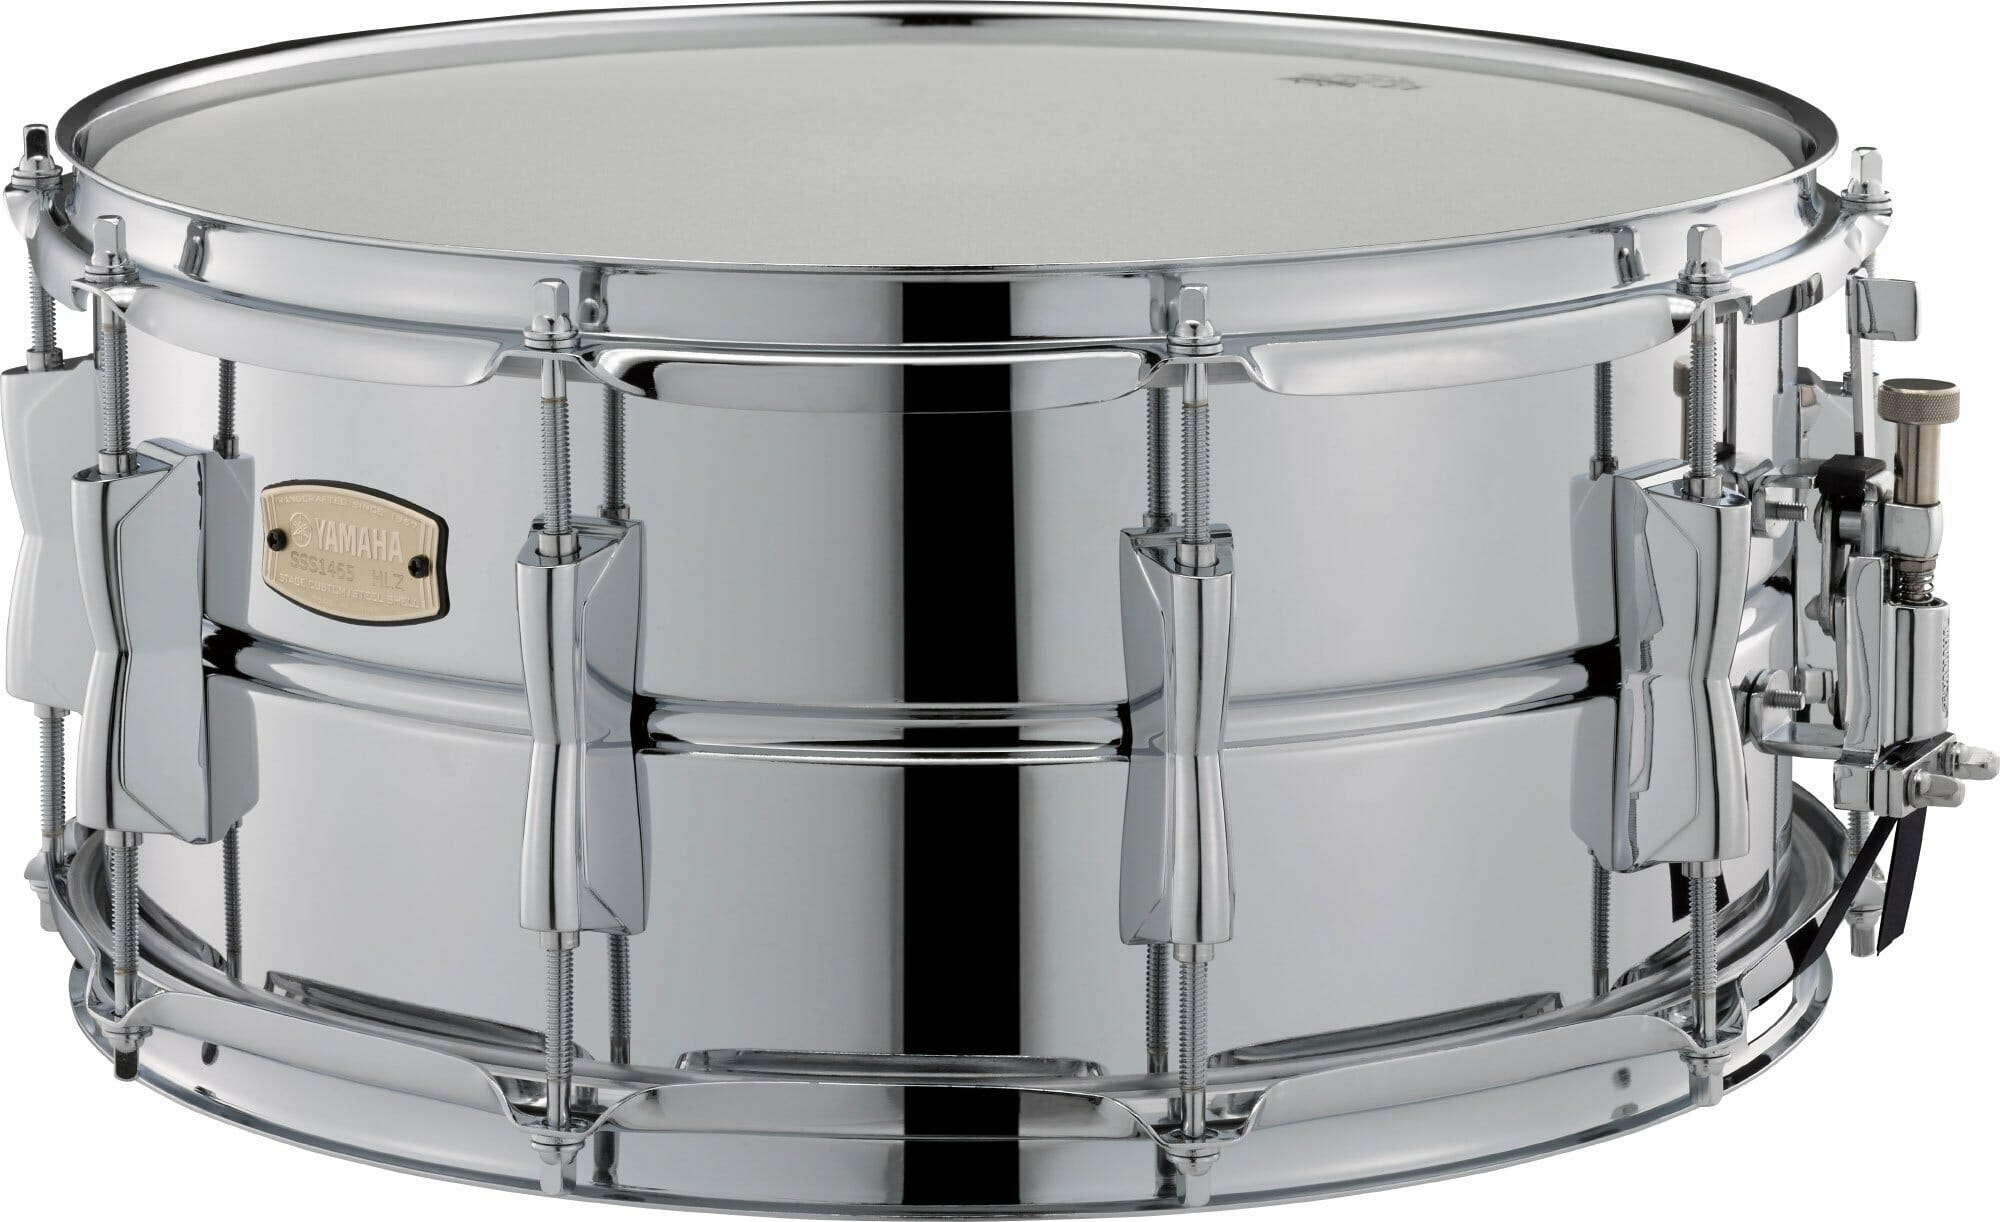 b96592f4db55 Yamaha SSS1465 Stage Custom 14x6.5in Steel Snare – Drummers Only